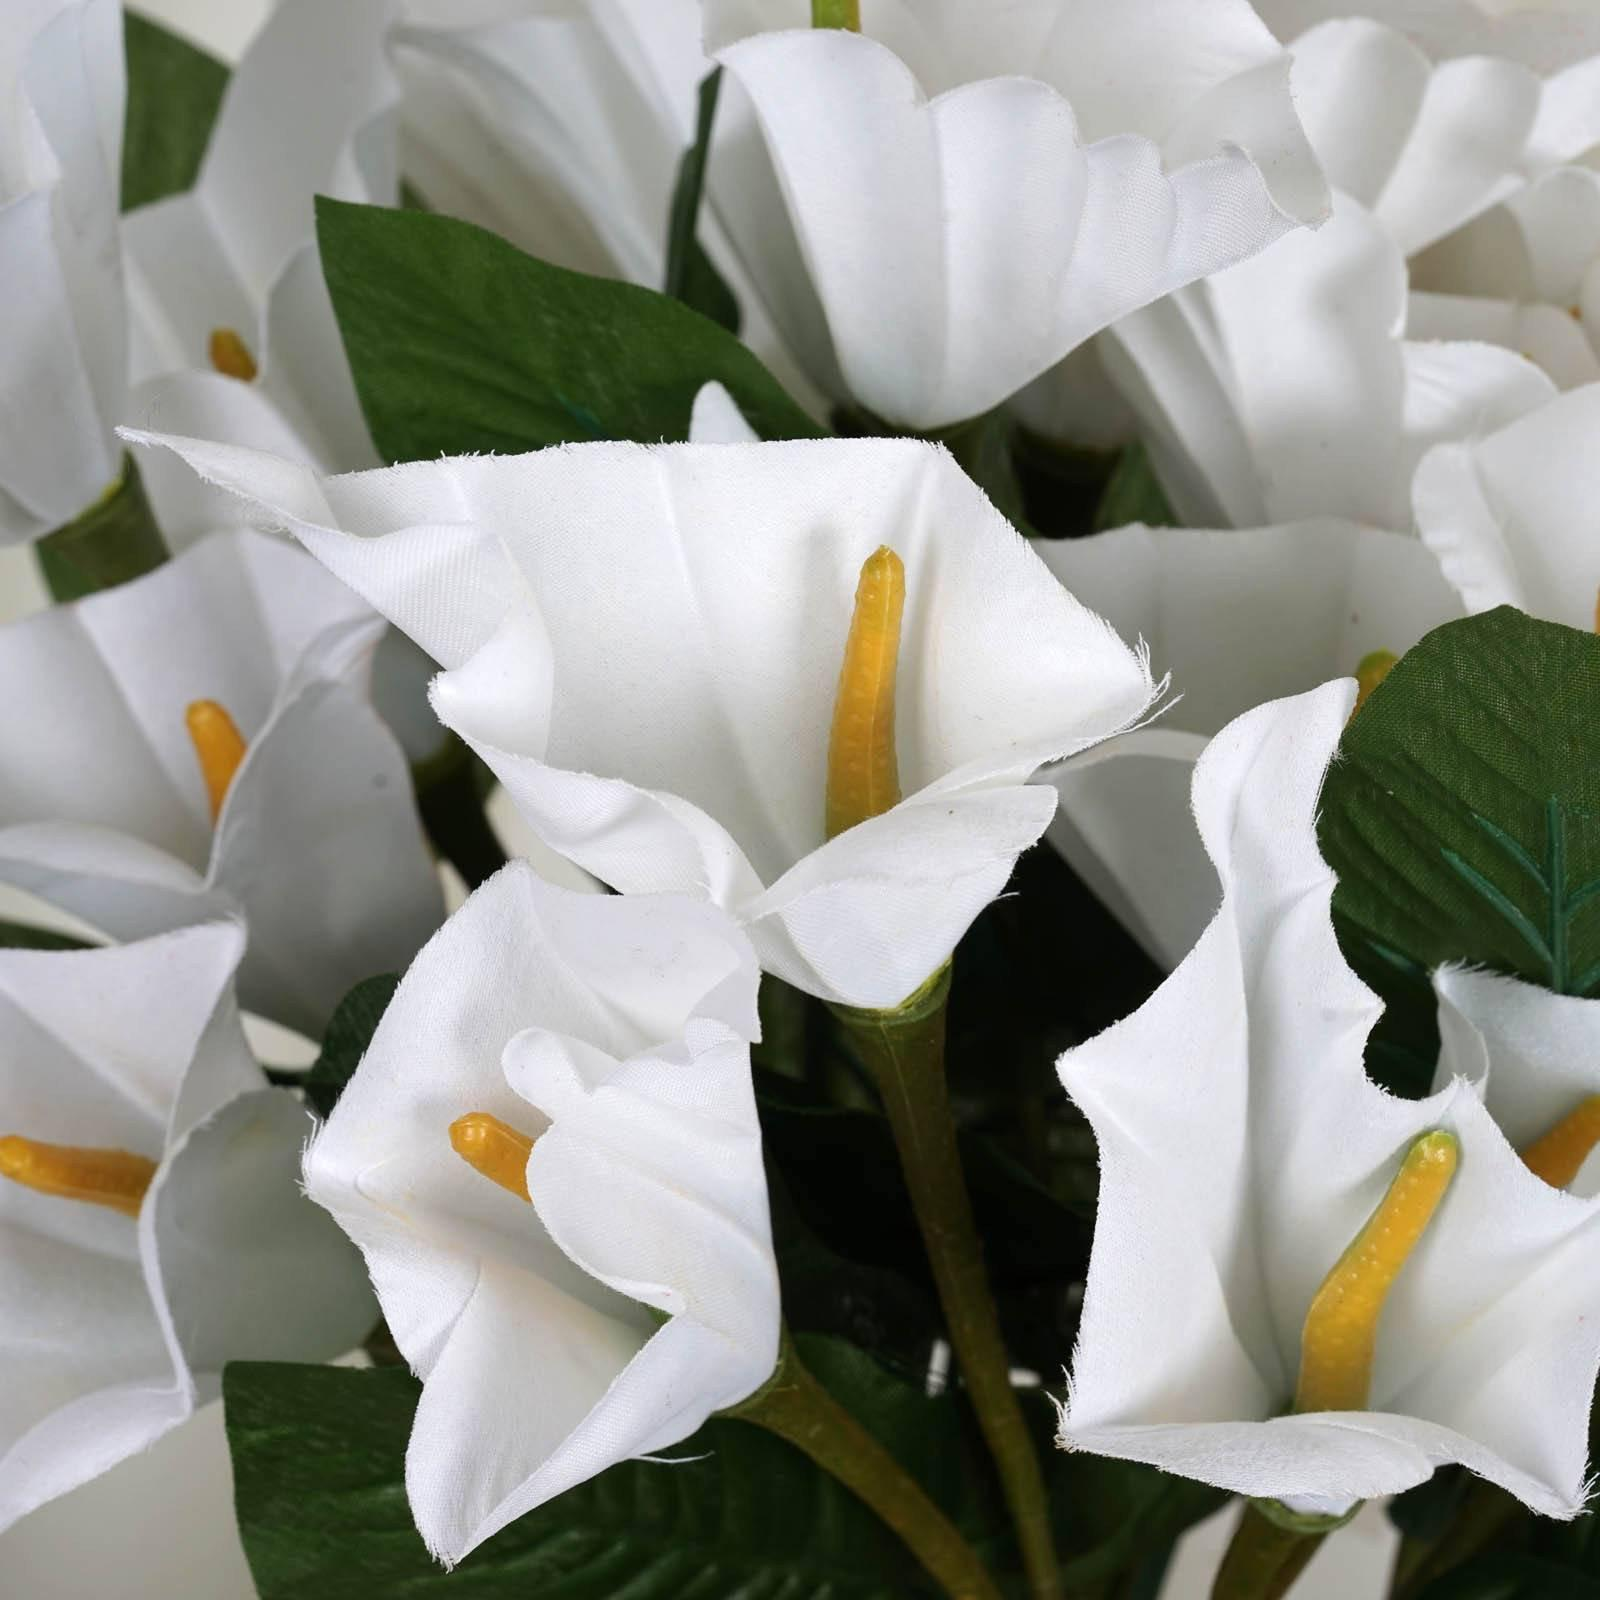 12 bush 84 pcs white artificial calla lily flowers bridal bouquet 84 calla lily white izmirmasajfo